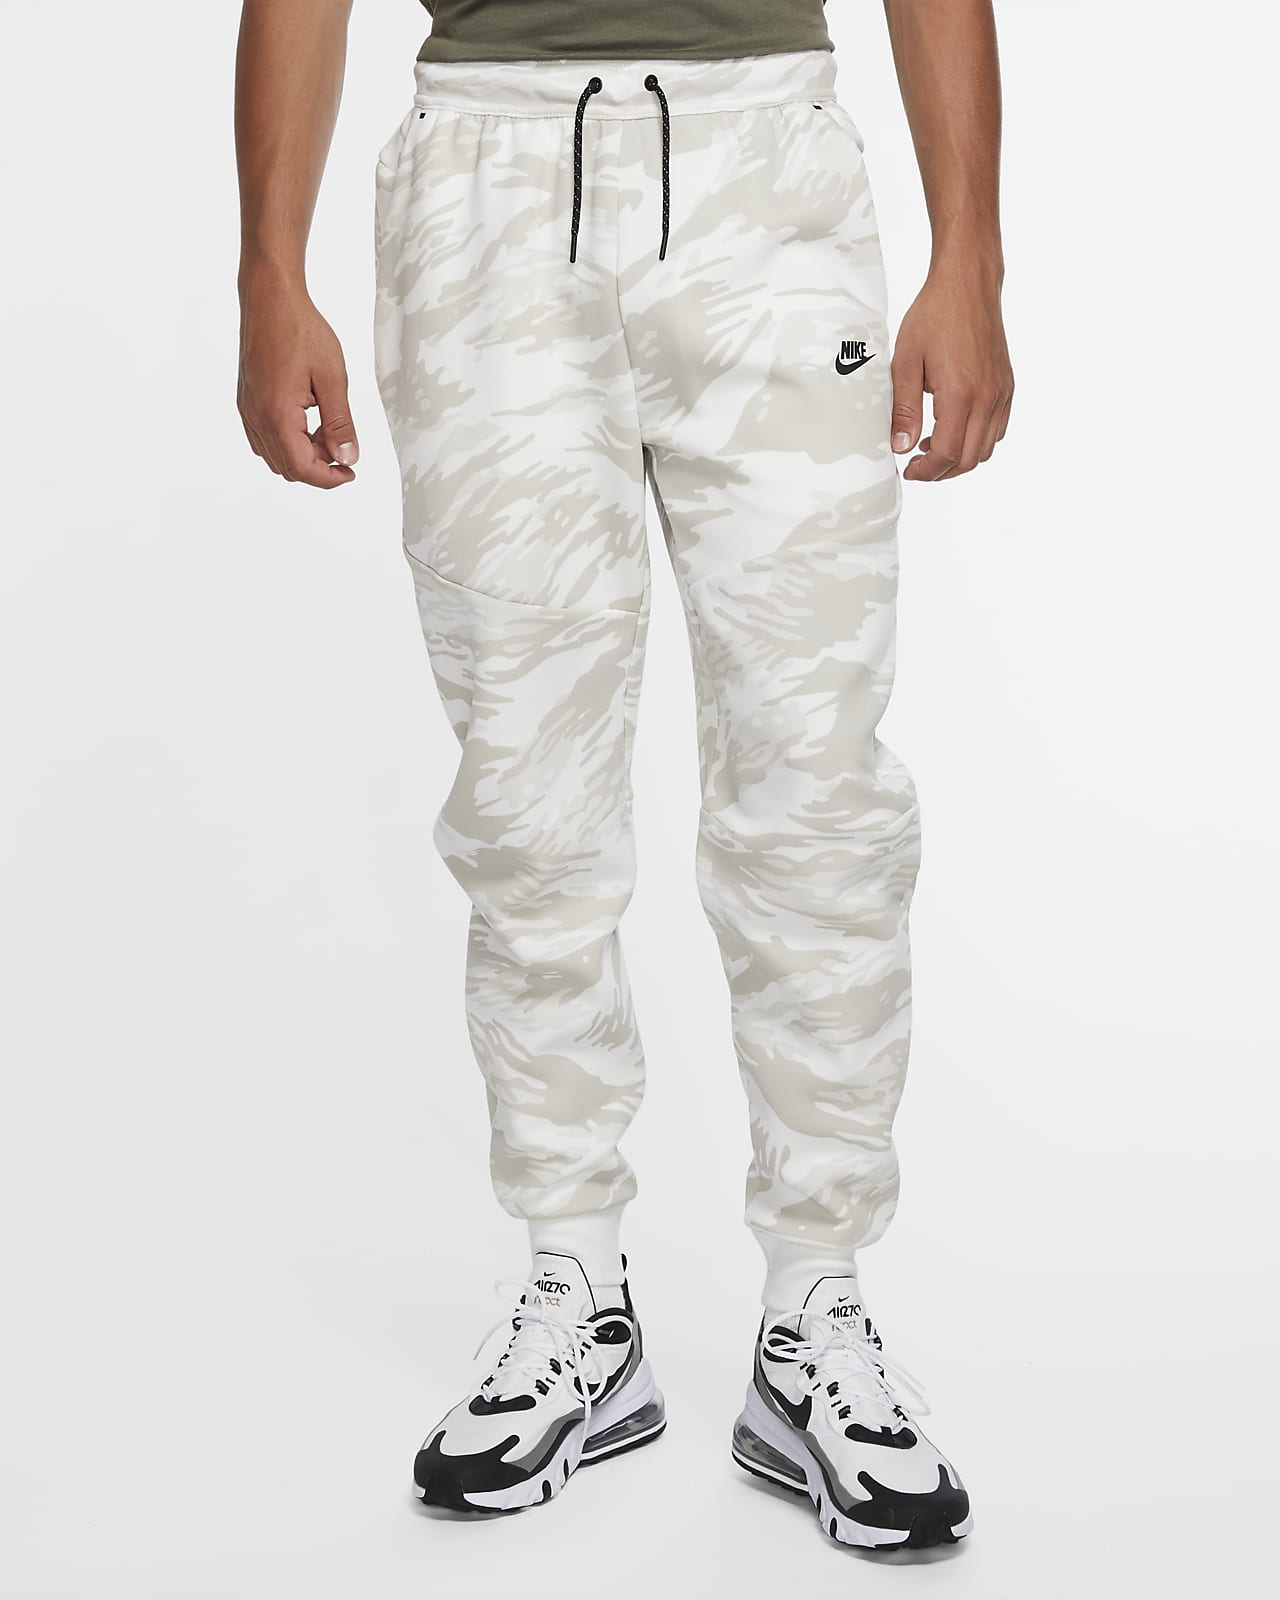 Nike Tech Fleece Joggingbroek met camouflageprint voor heren